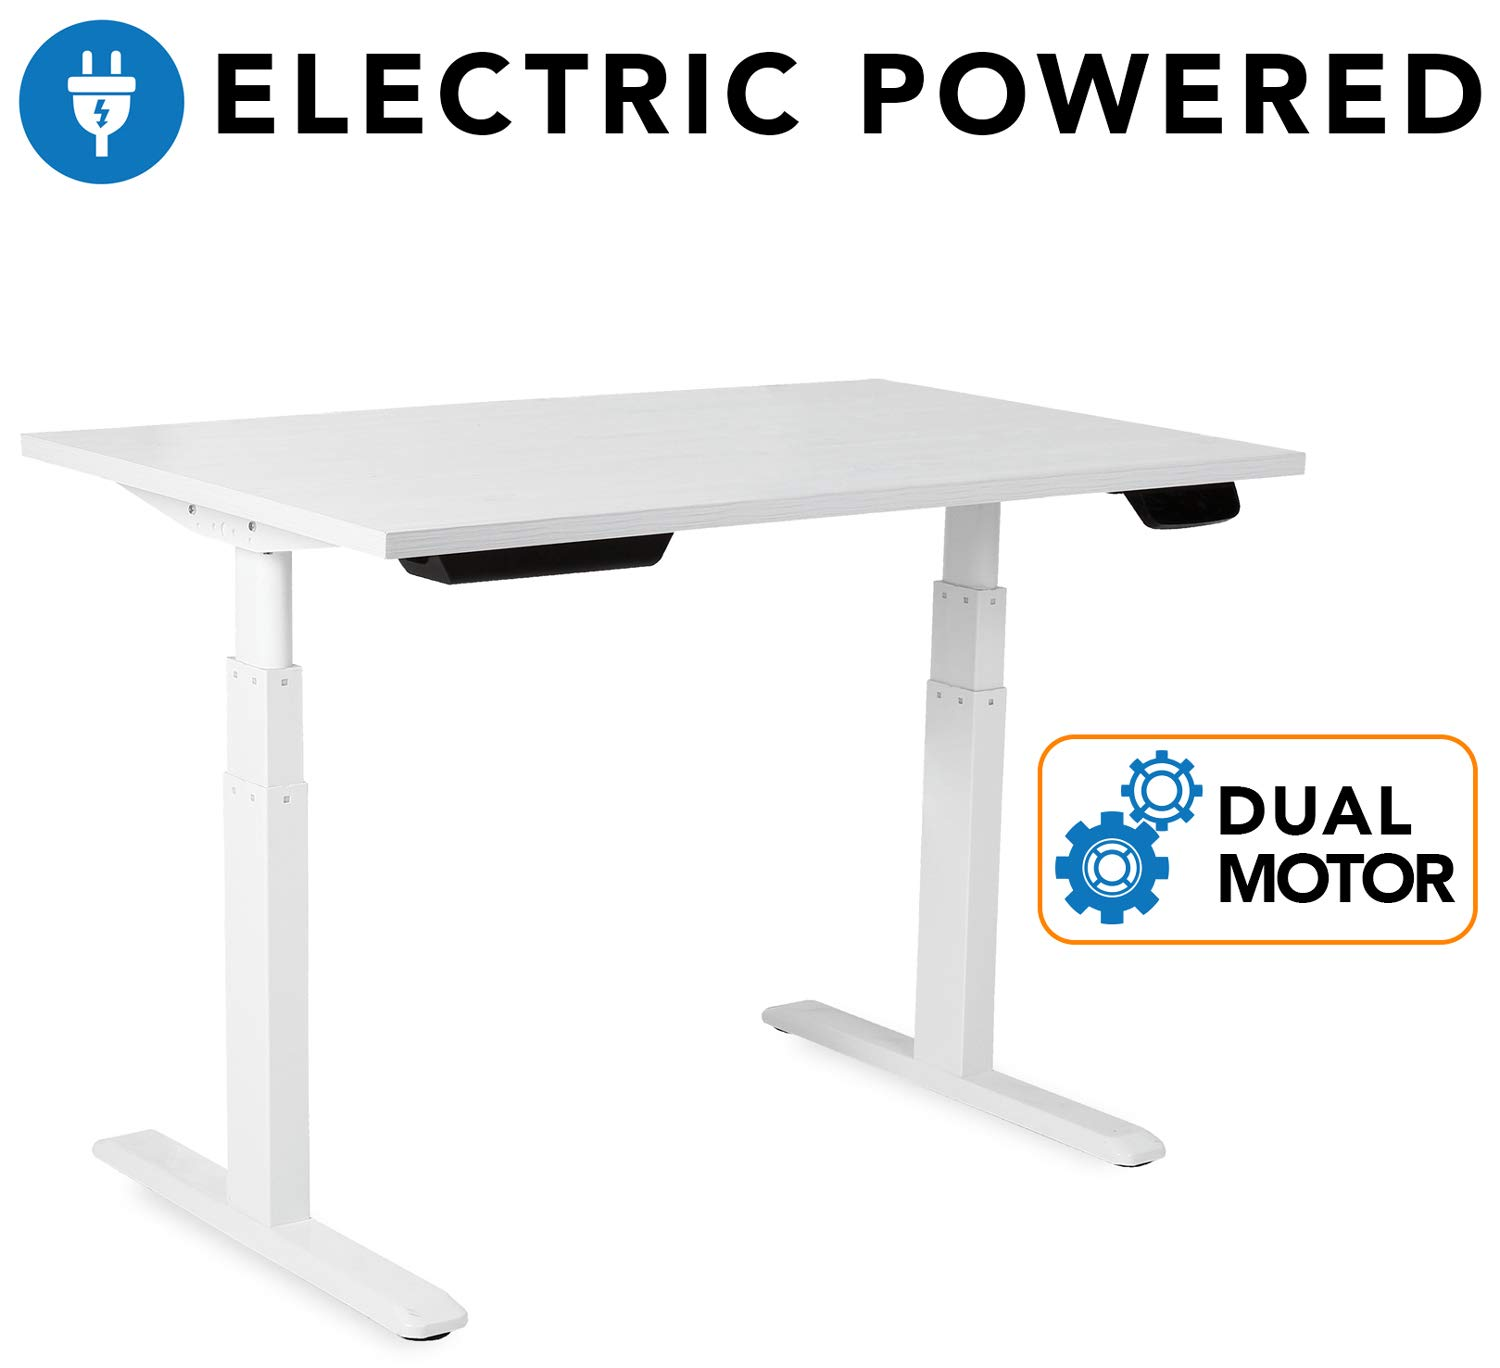 Mount-It! Electric Standing Desk Frame - Motorized Sit Stand Desk Base with Programmable, Memory and Timer Function LED Touch Control - Dual Motor Height Adjustable Workstation - Steel Base, White by Mount-It!